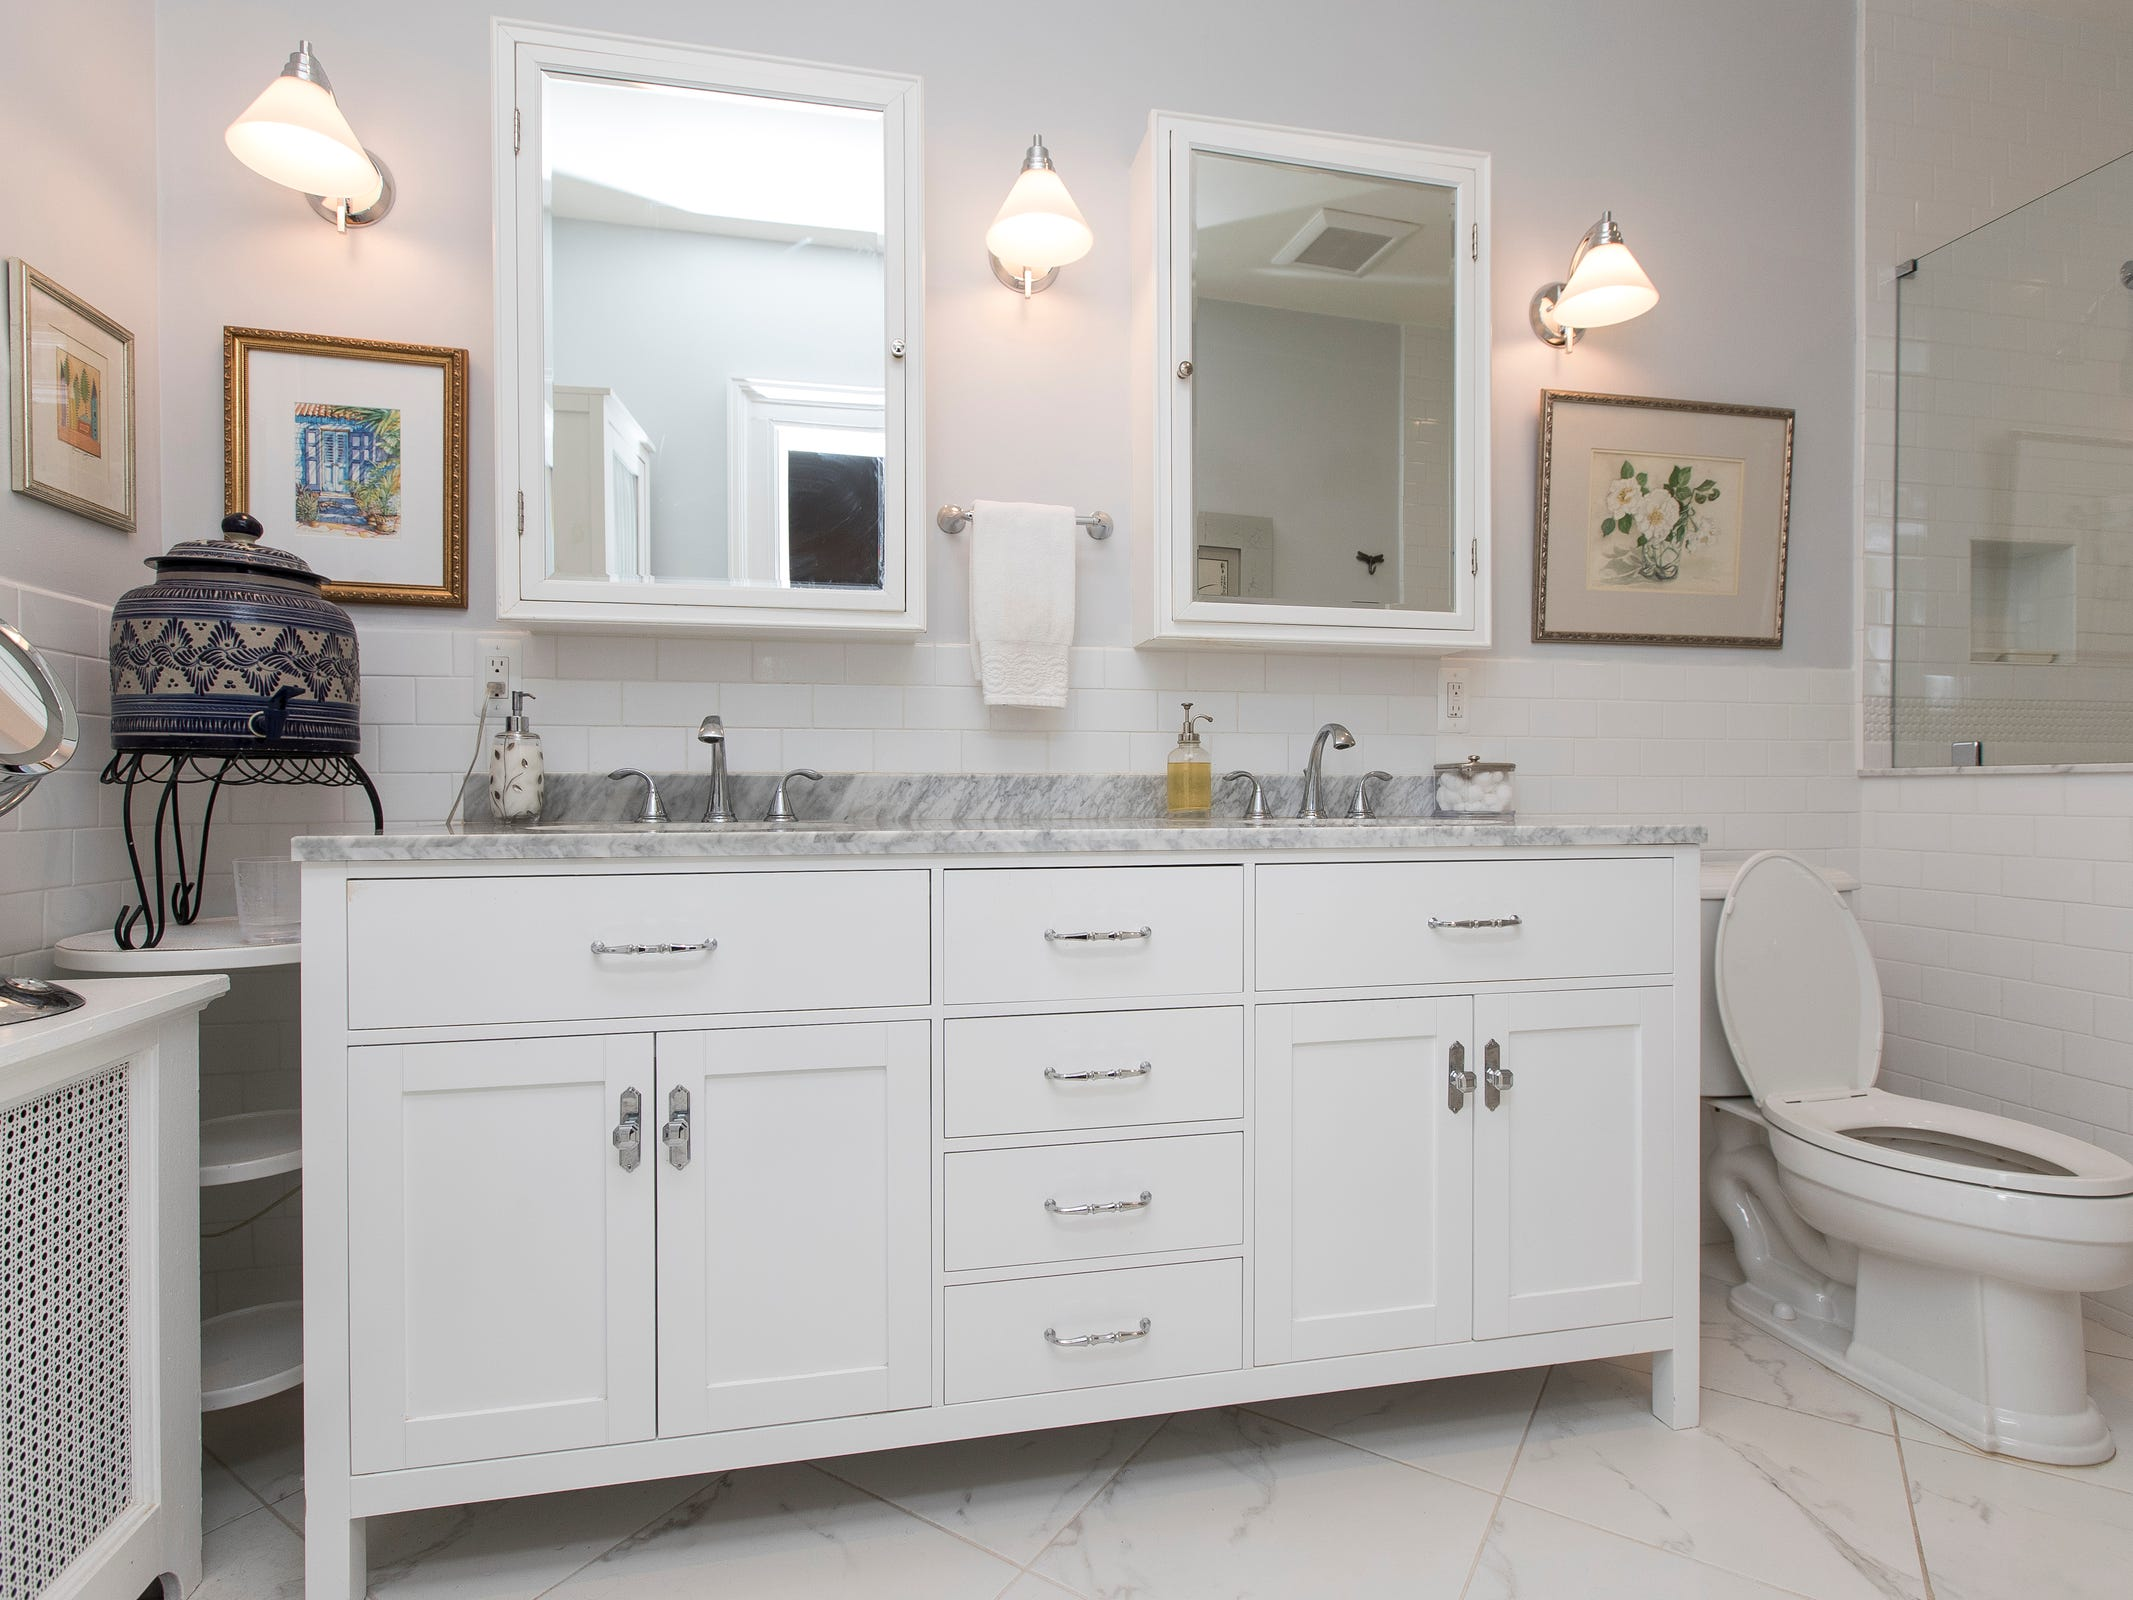 The owners' bath is one of only two spots where a wall was changed. The owner stole space from the back of a deep closet to enlarge the bath with a double-sink vanity and European shower.